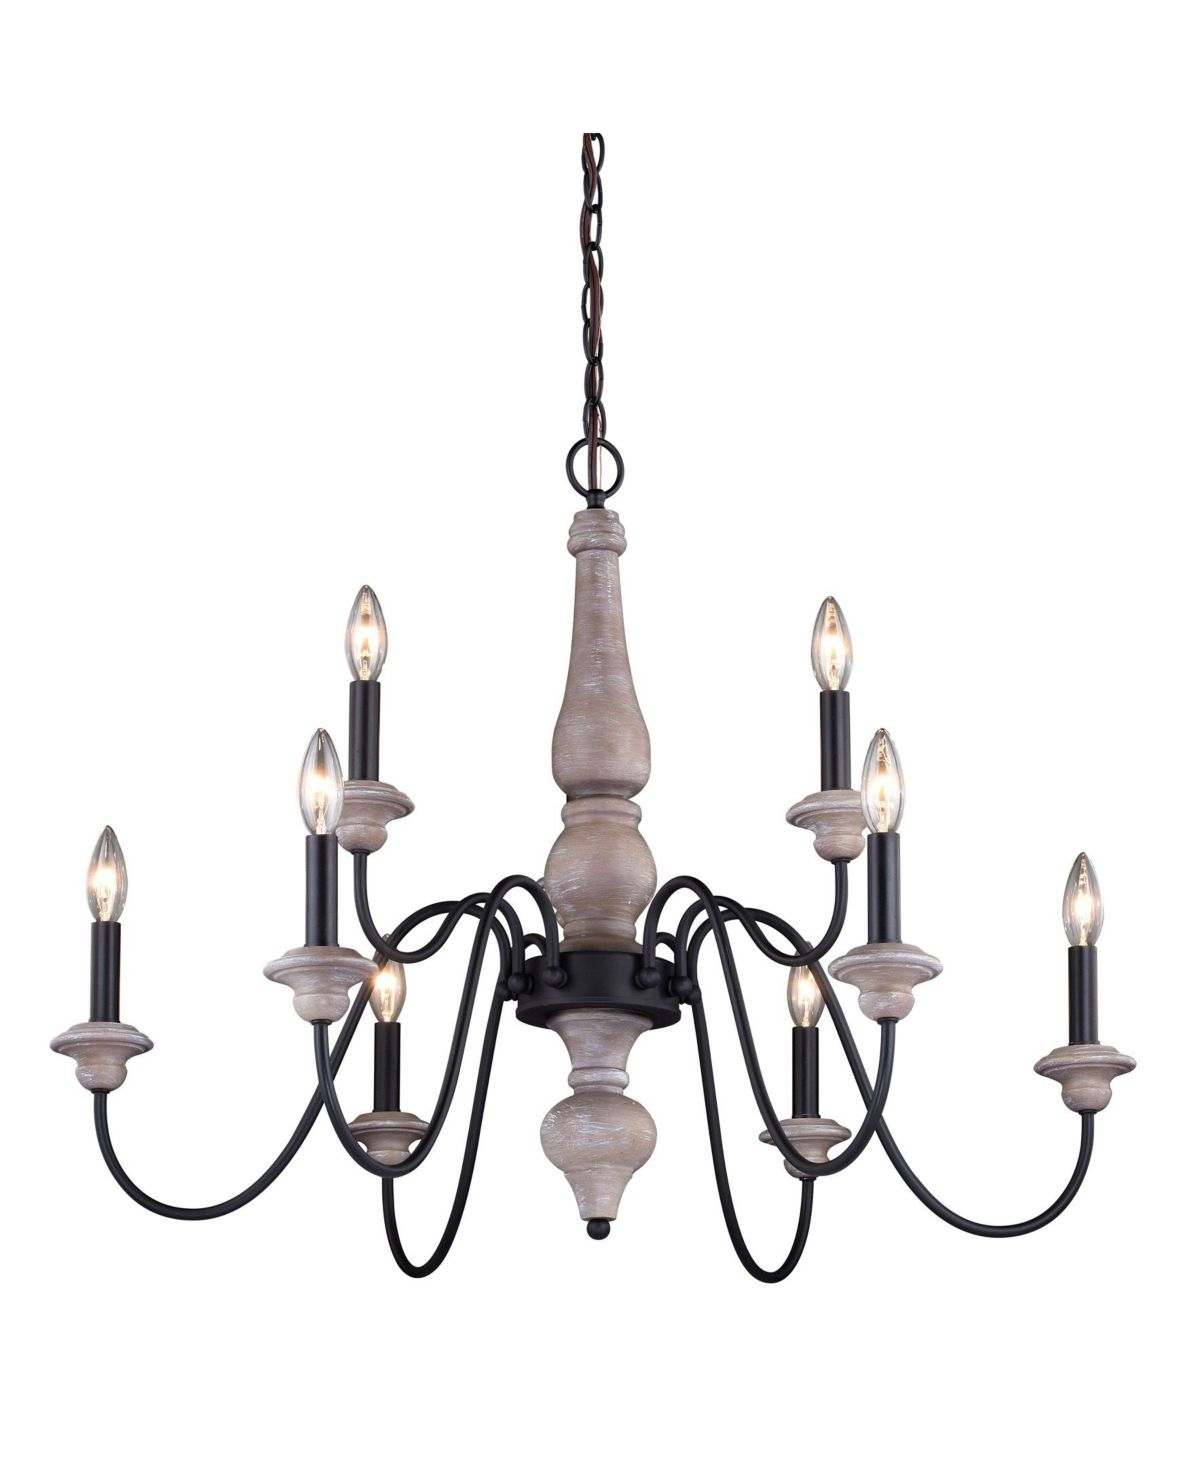 Vaxcel Georgetown Wood And Farmhouse 9 Light Chandelier Reviews Home Macy S In 2020 Vaxcel Chandelier Lighting Chandelier